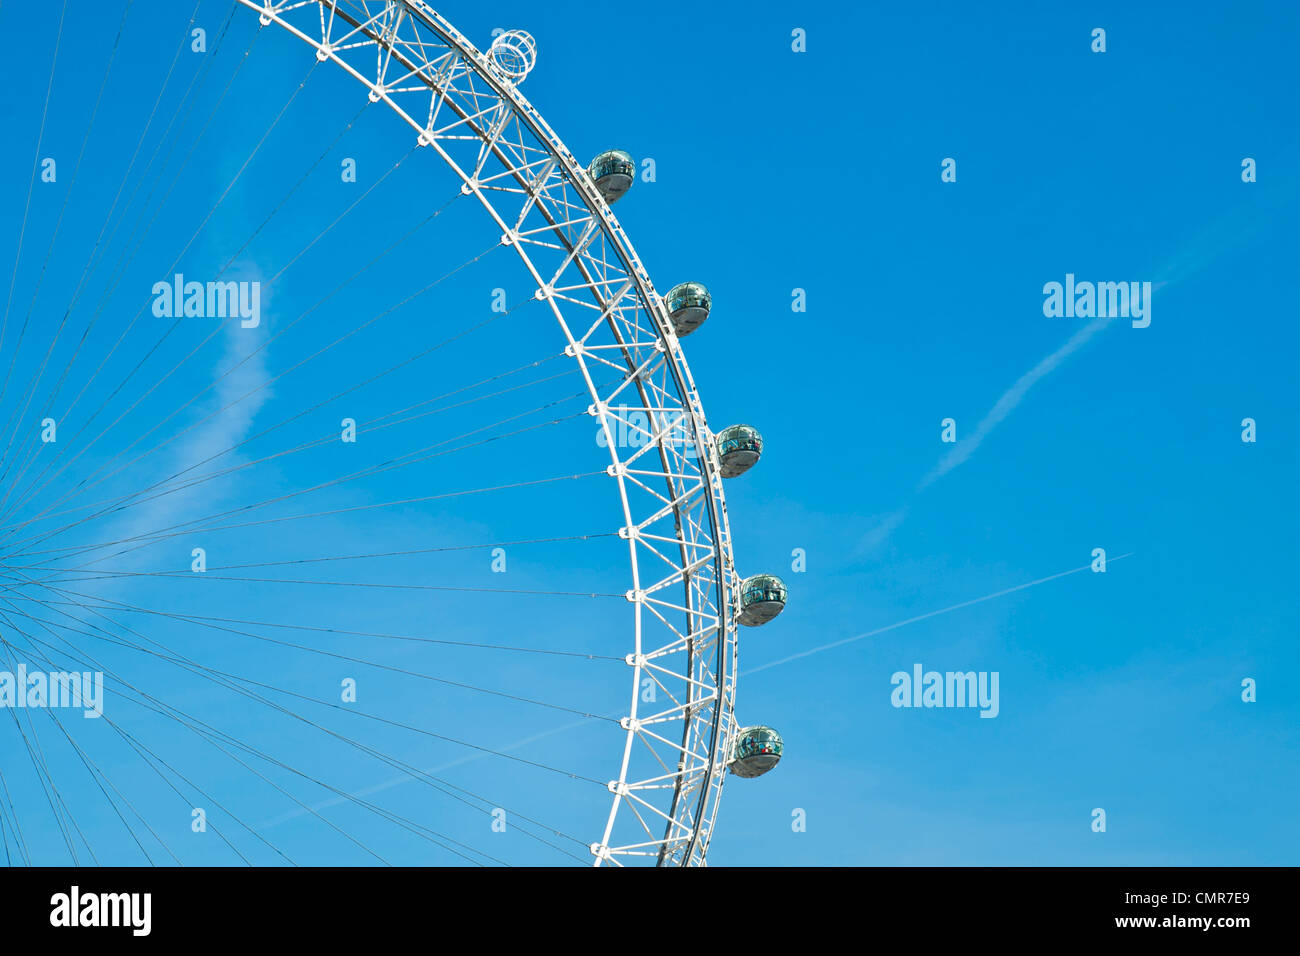 London Eye, Ferris Wheel,  London, U.K. - Stock Image